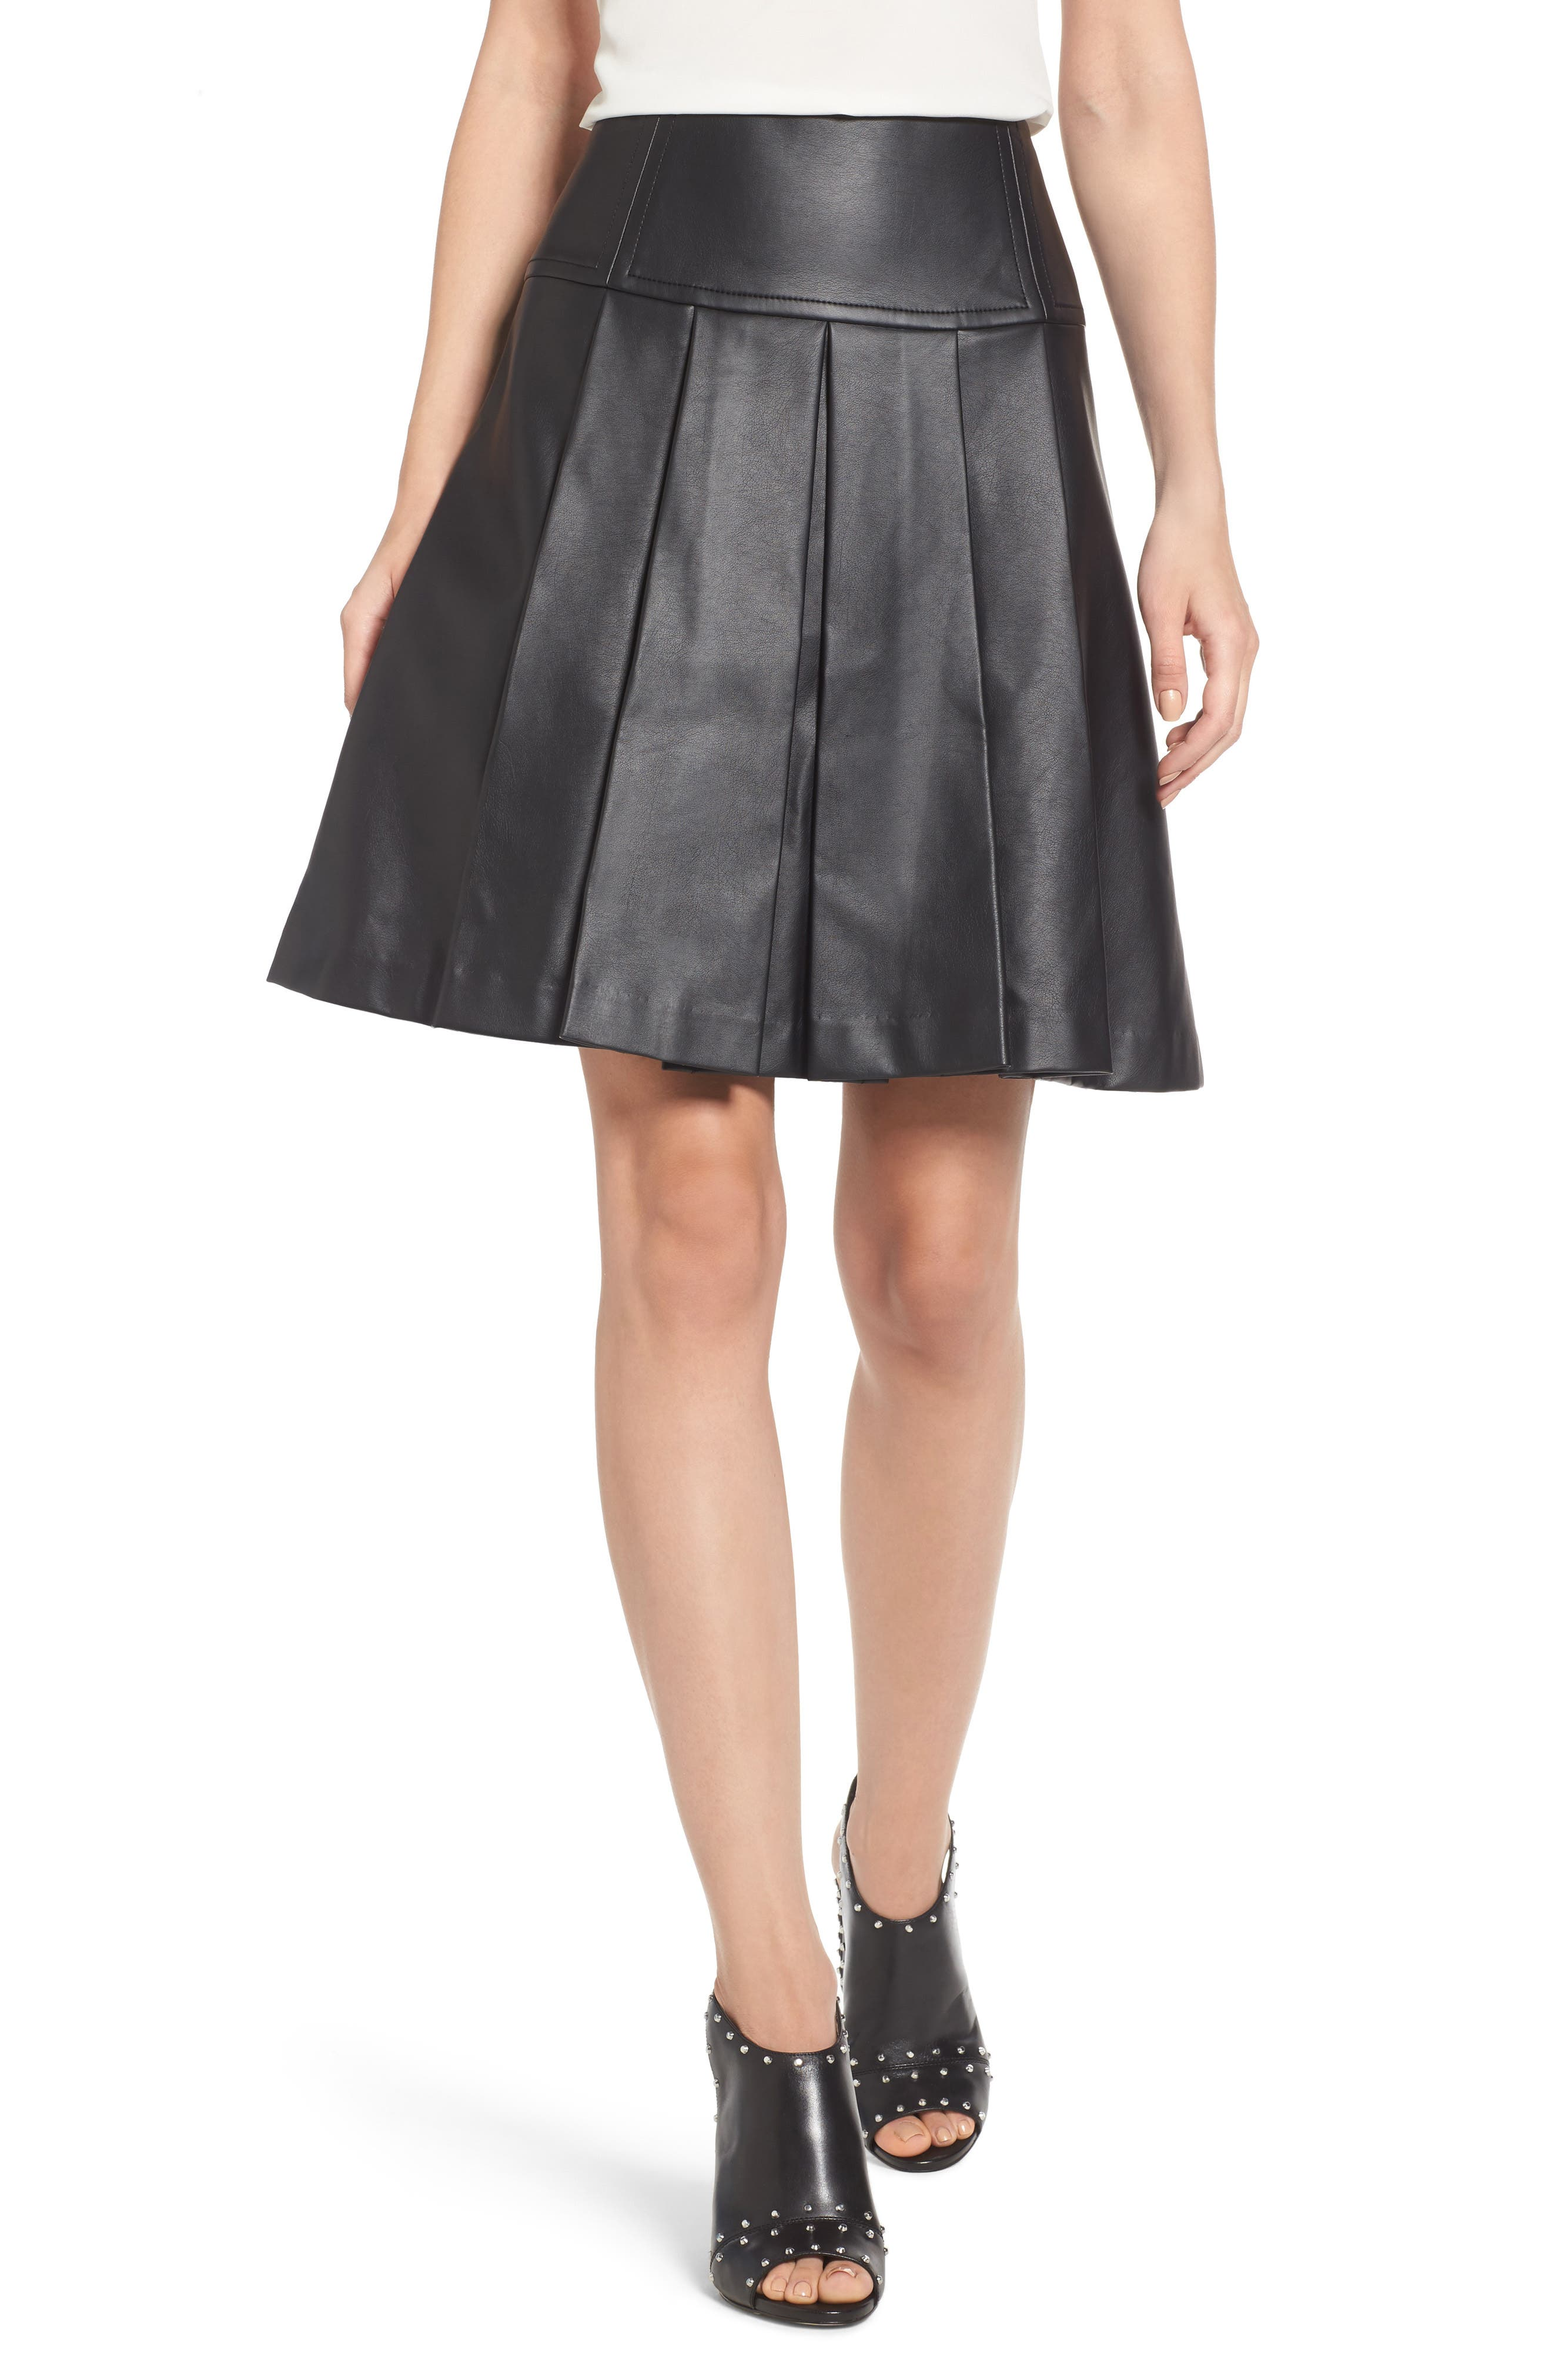 Alternate Image 1 Selected - MICHAEL Michael Kors Pleat Faux Leather Skirt